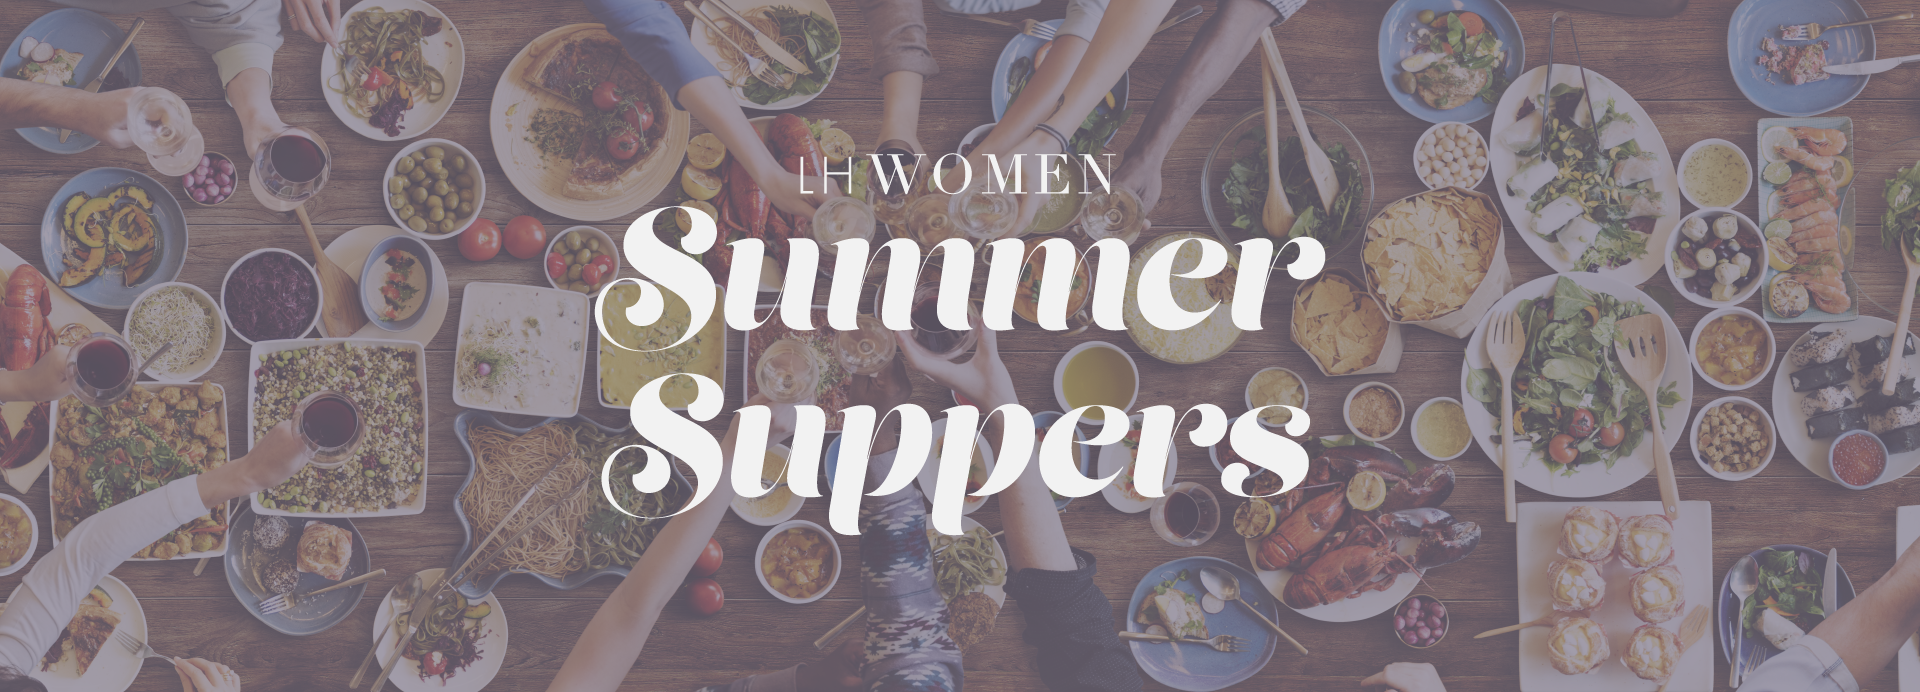 SummerSuppers_1920x692.png